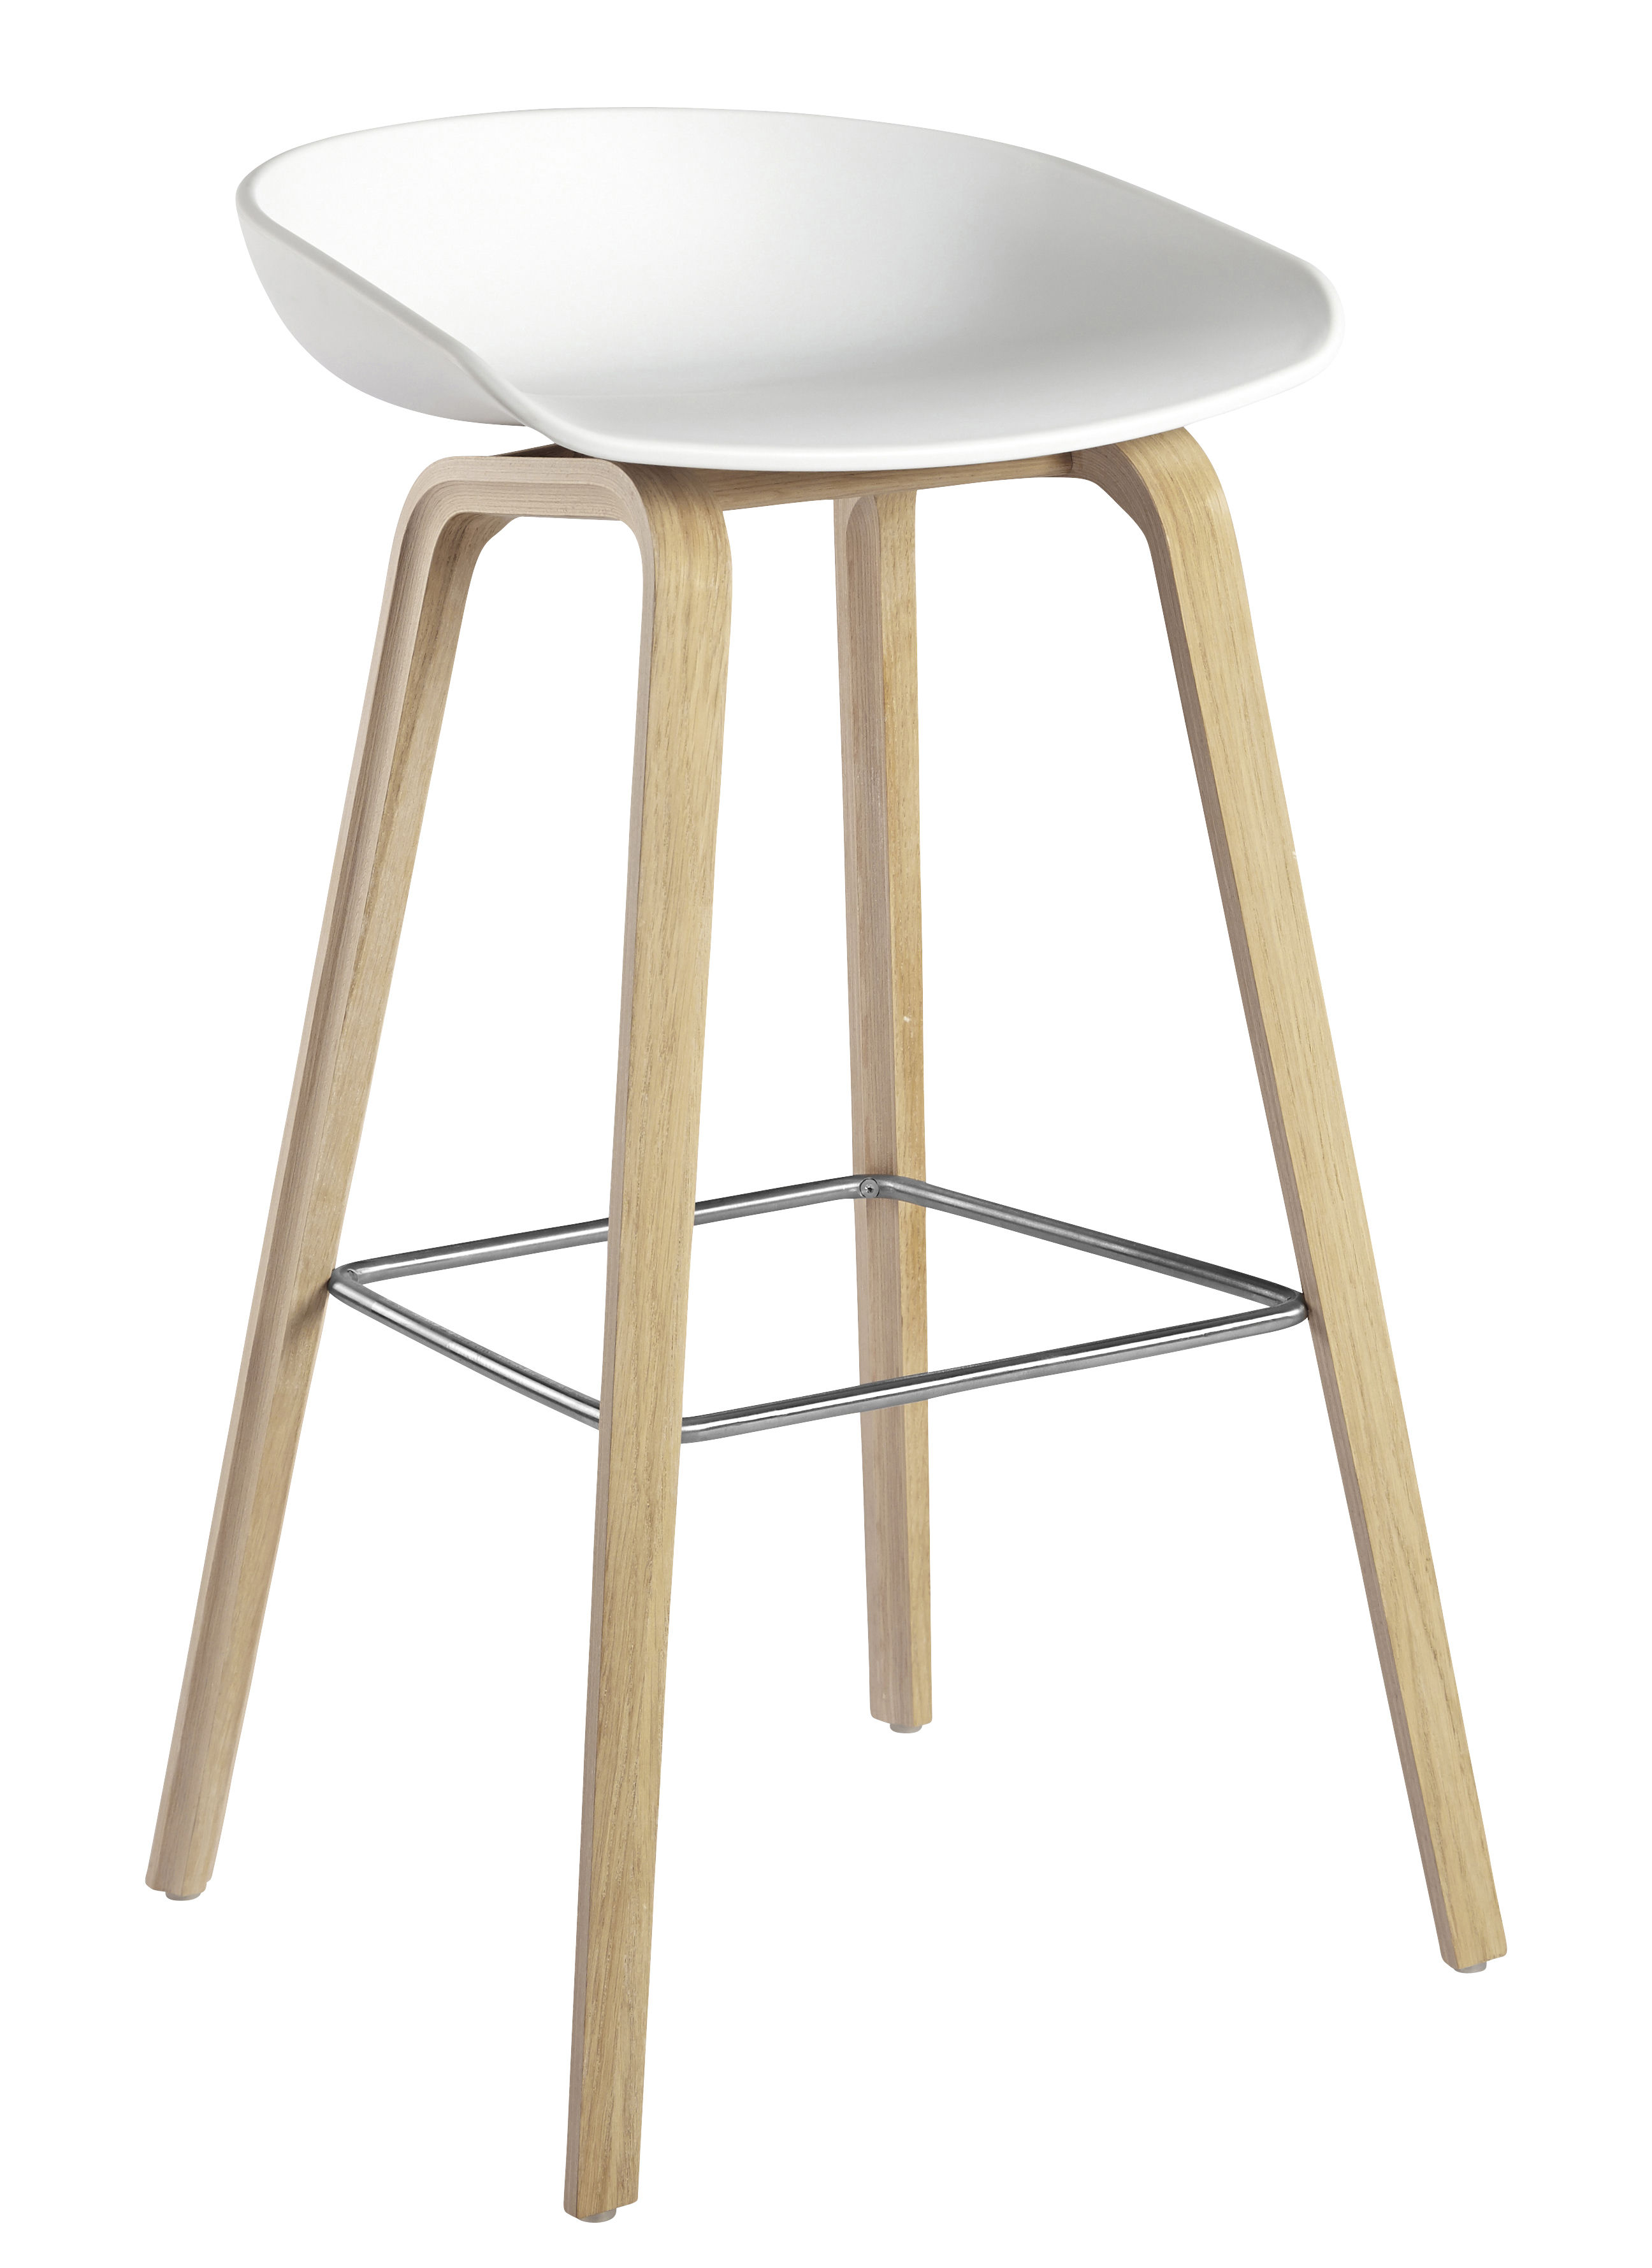 tabouret hay about a stool h 75 cm blanc pieds bois made in design. Black Bedroom Furniture Sets. Home Design Ideas